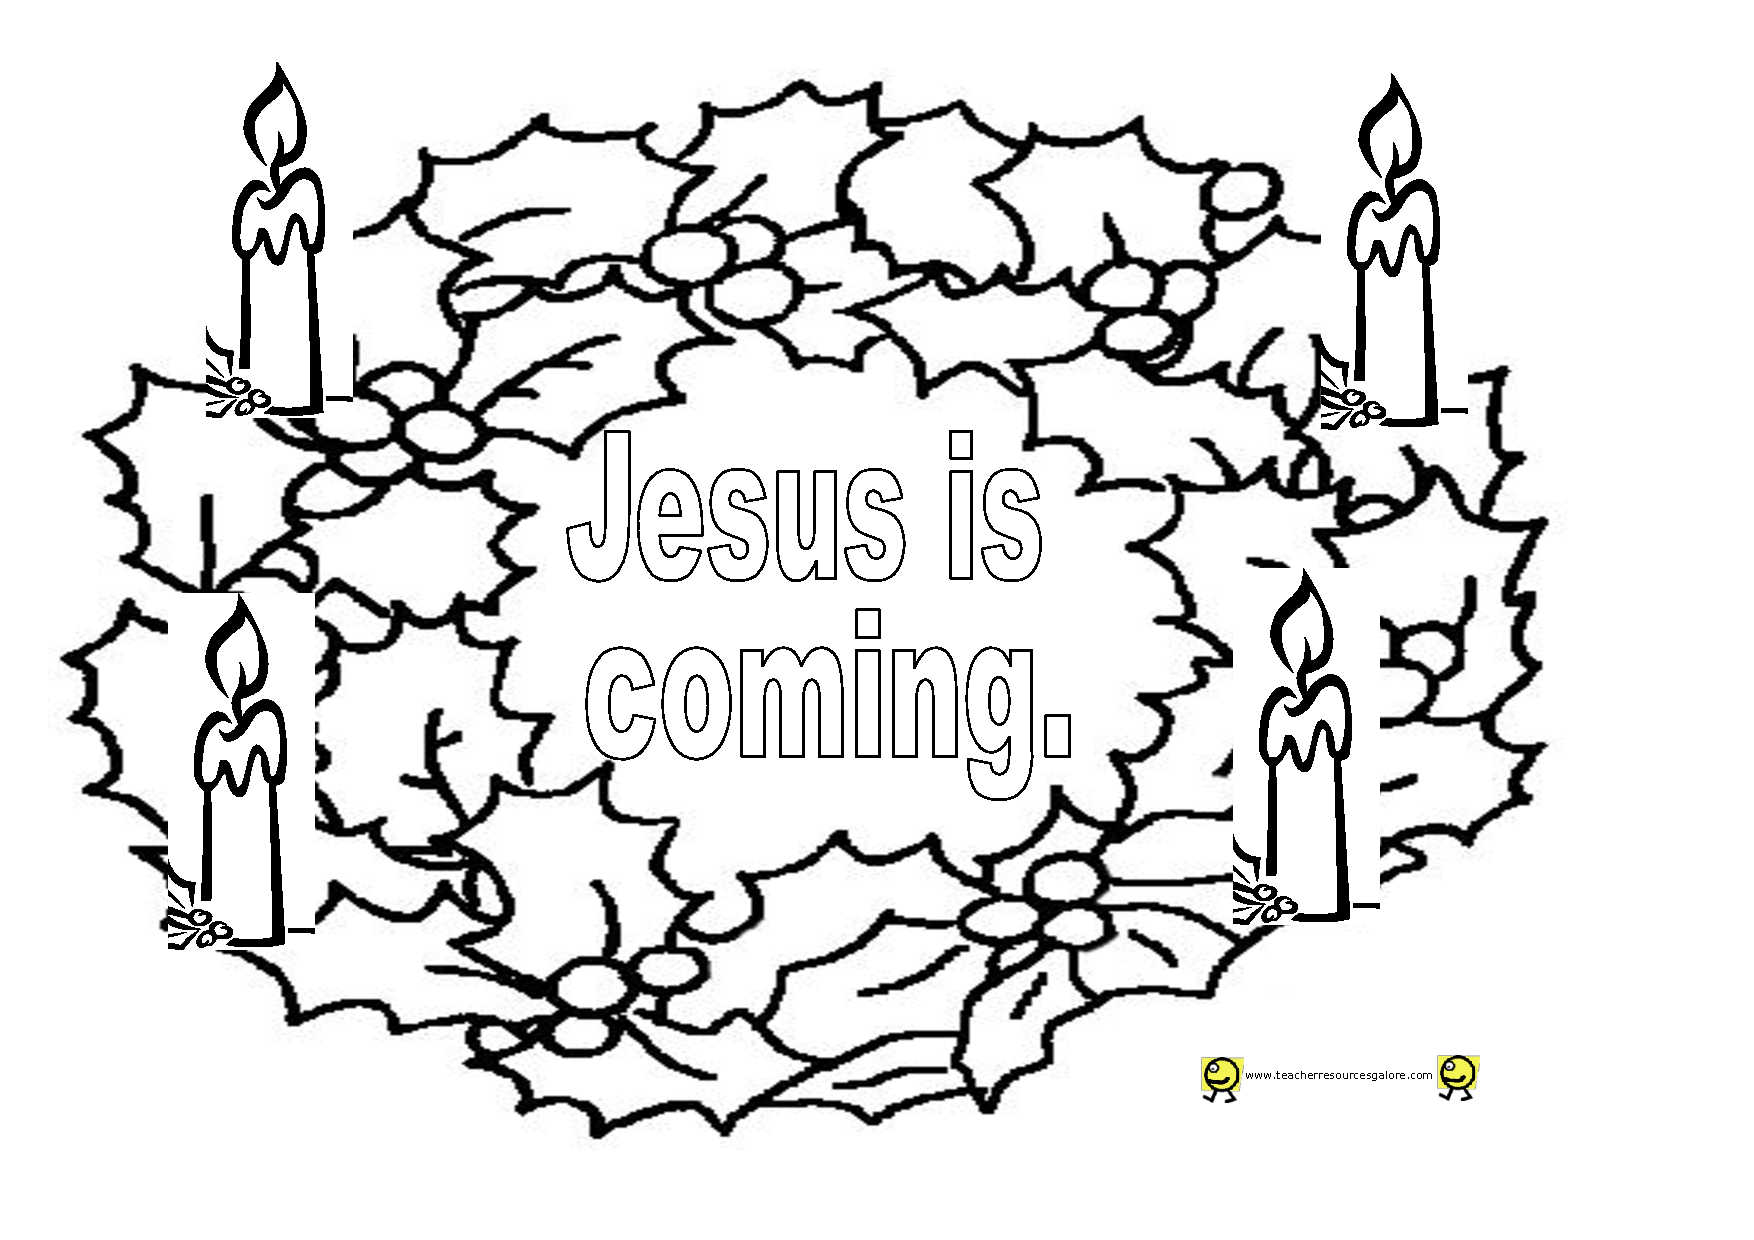 Advent Wreath Coloring Page Advent Coloring Coloring Pages To Print Coloring Pages Inspirational